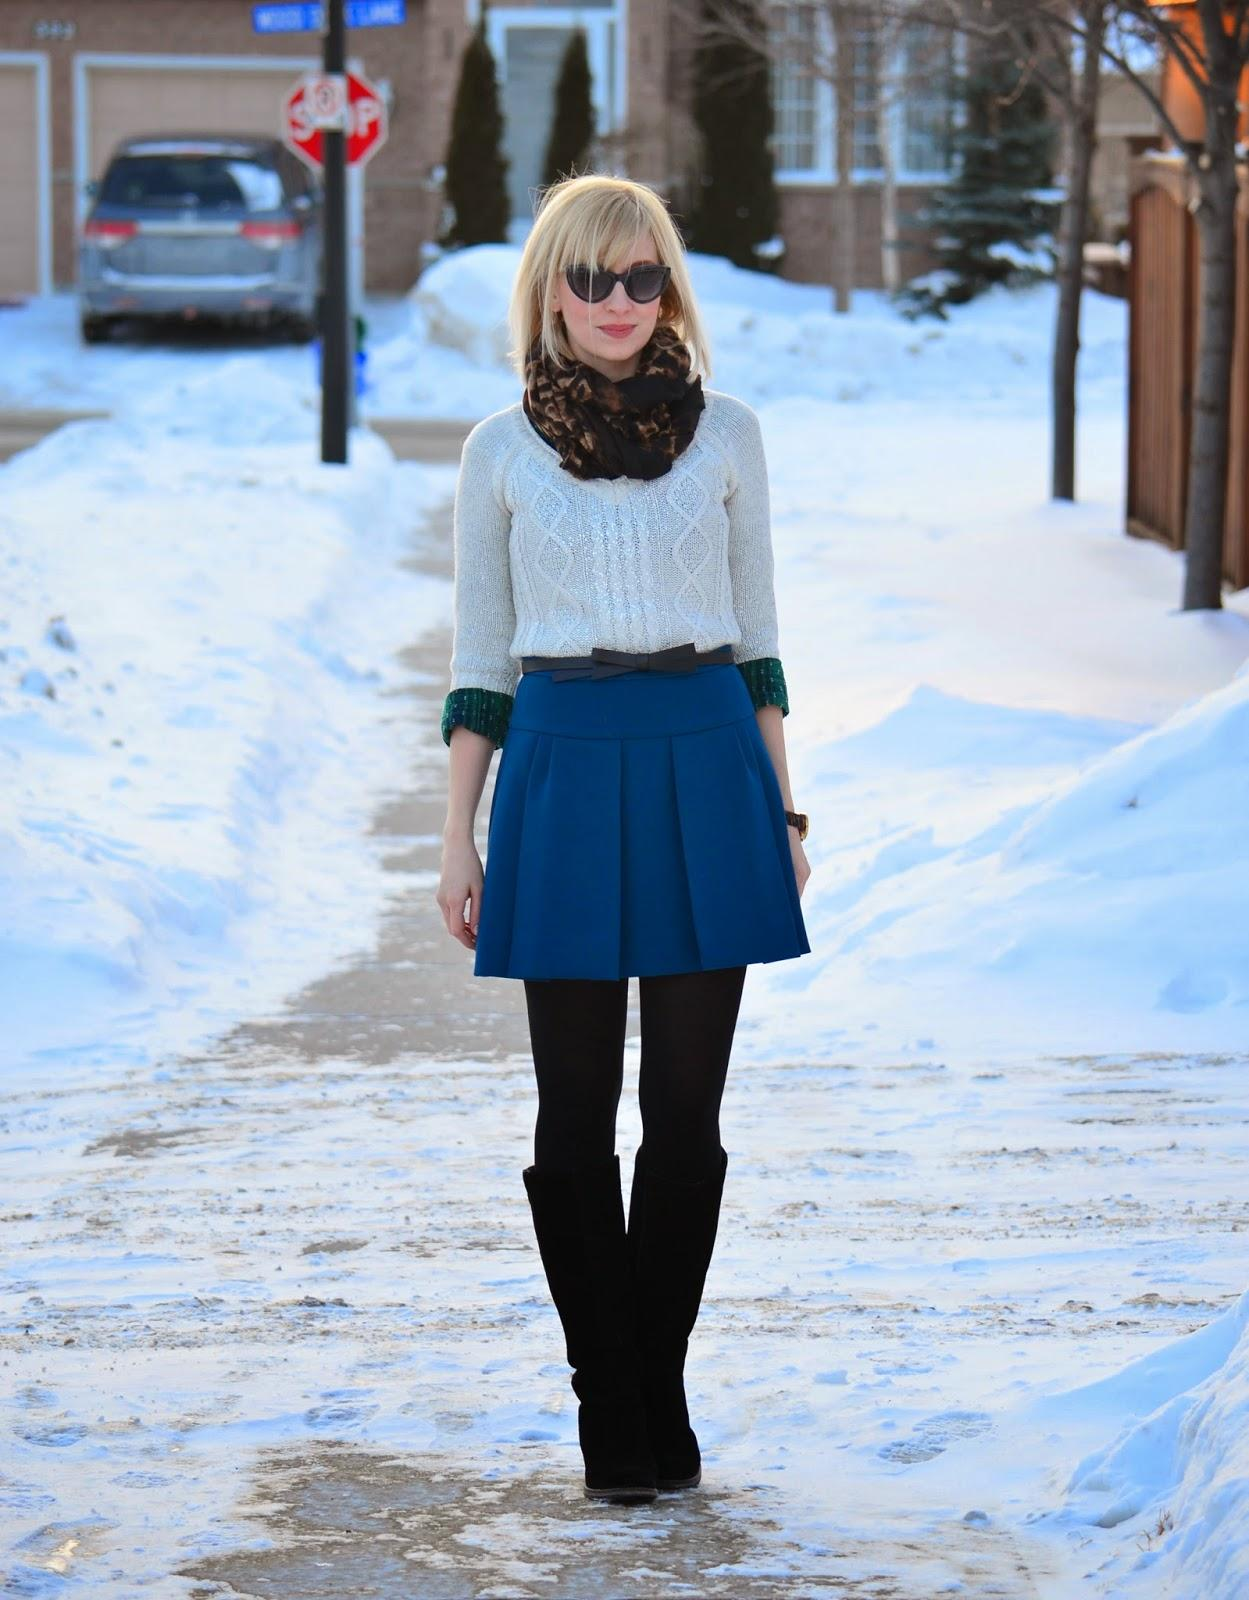 Style, OOTD, preppy, preppy style, smart casual, pleated skirt, skirt style, J. Crew, Kate Spade, Asos, Target, leopard scarf, bow, skirt style, jcrew style, preppy, pleated skirt style